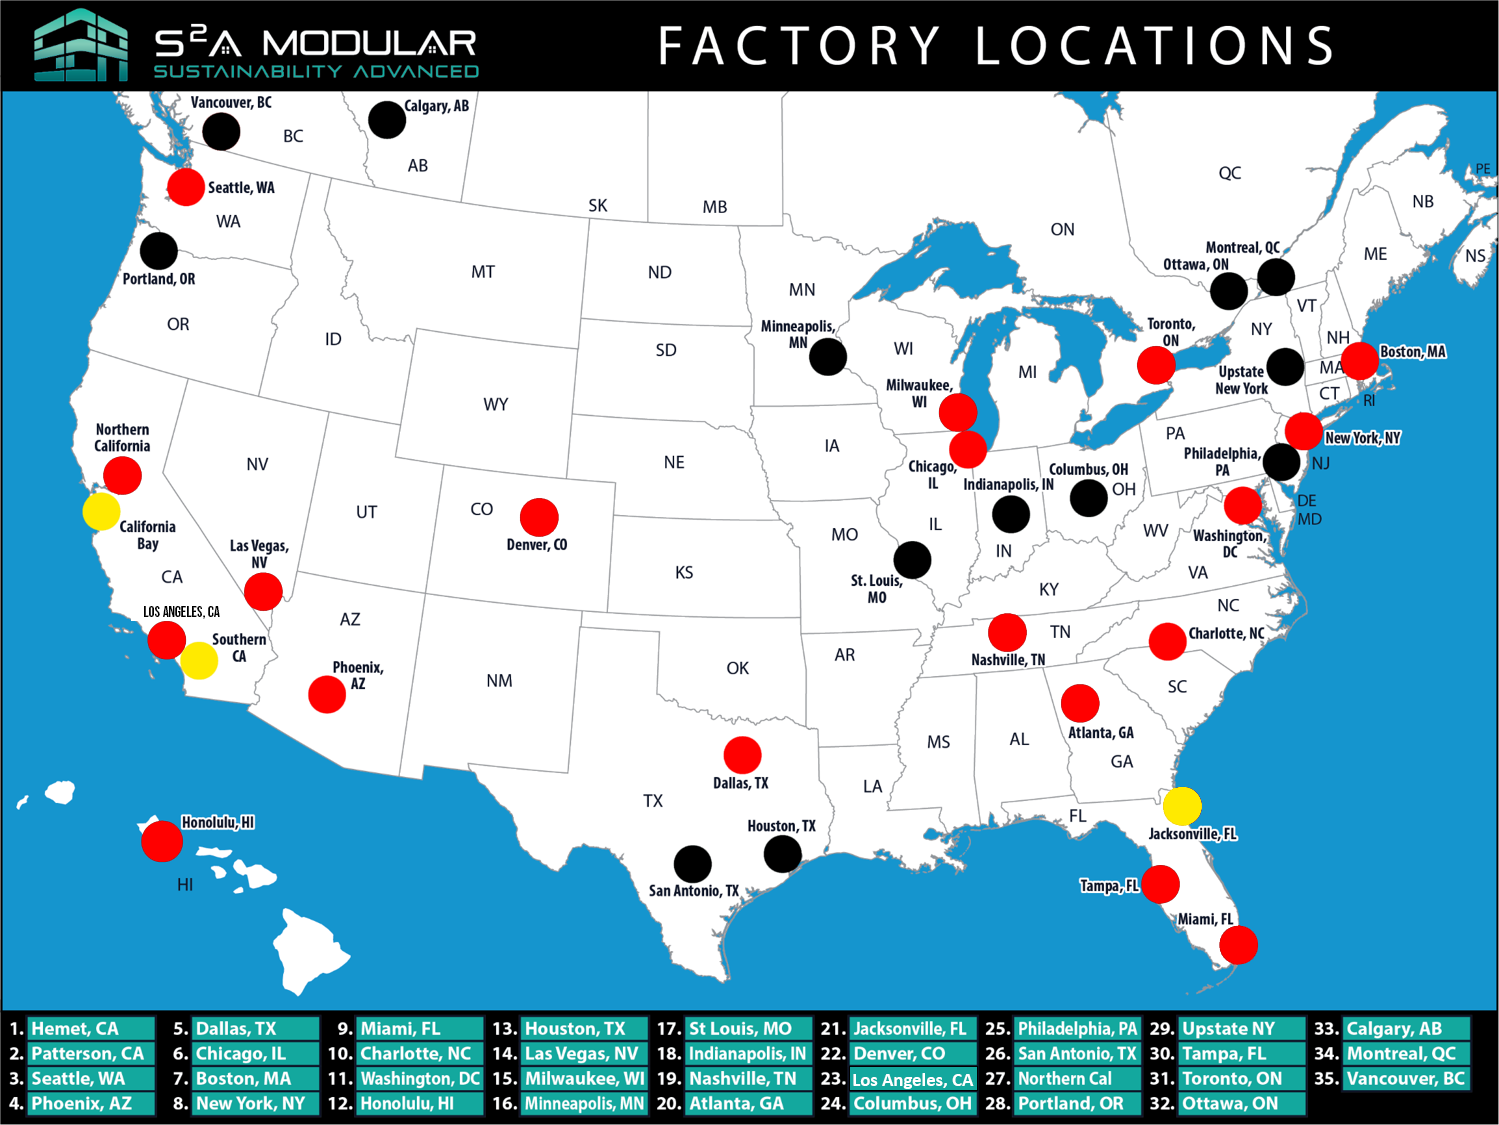 01.07.21-MAP-of-S2A-Factory-Locations_v2.5